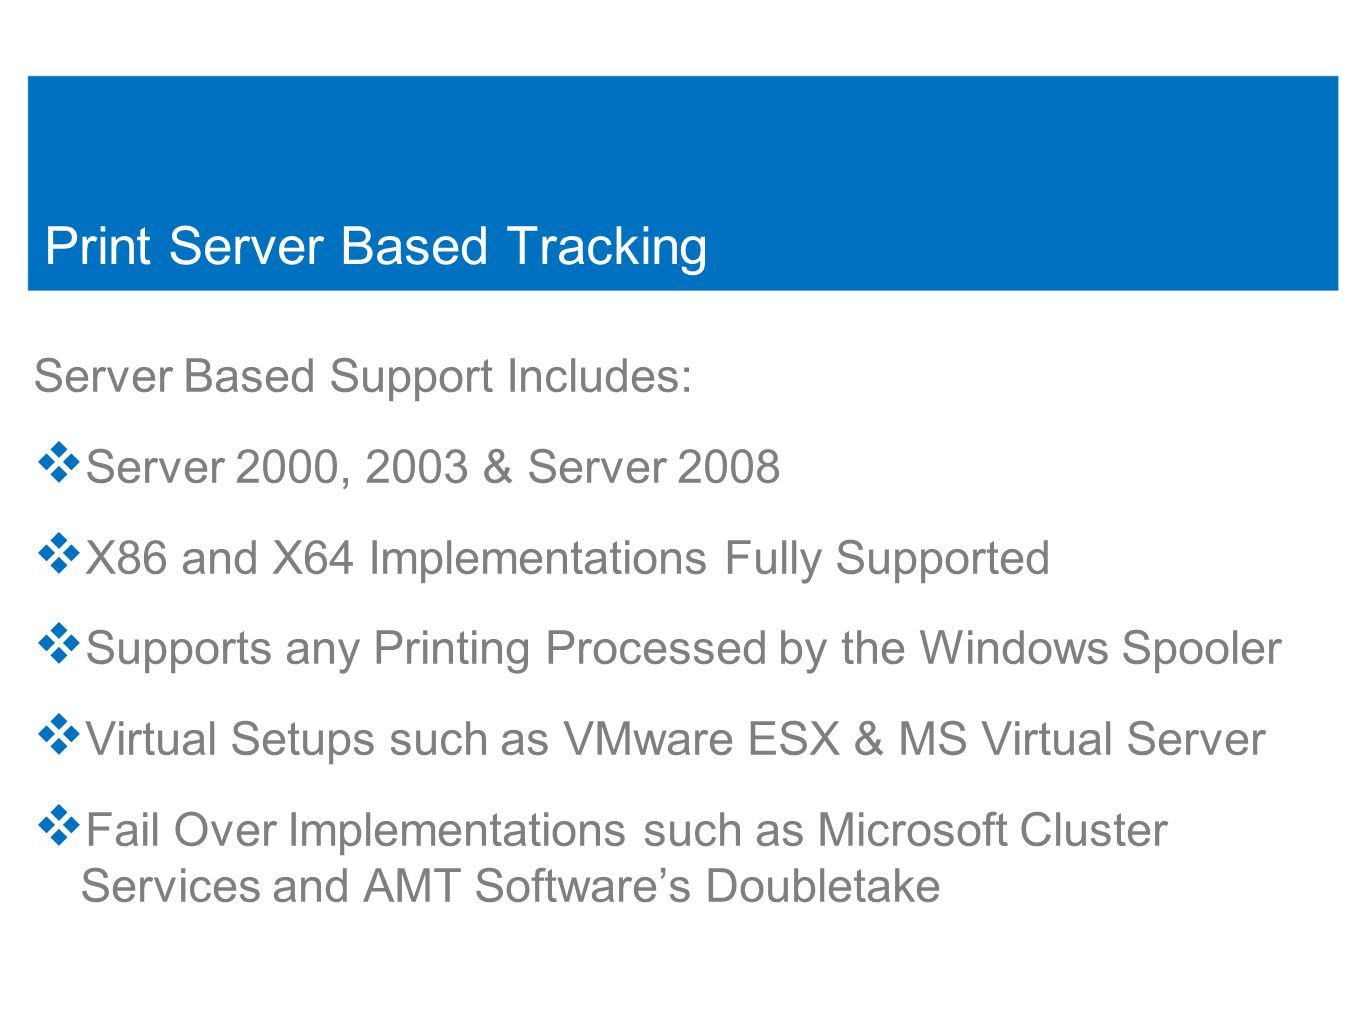 3 Print Server Based Tracking Server Based Support Includes:  Server 2000, 2003 & Server 2008  X86 and X64 Implementations Fully Supported  Supports any Printing Processed by the Windows Spooler  Virtual Setups such as VMware ESX & MS Virtual Server  Fail Over Implementations such as Microsoft Cluster Services and AMT Software's Doubletake 3